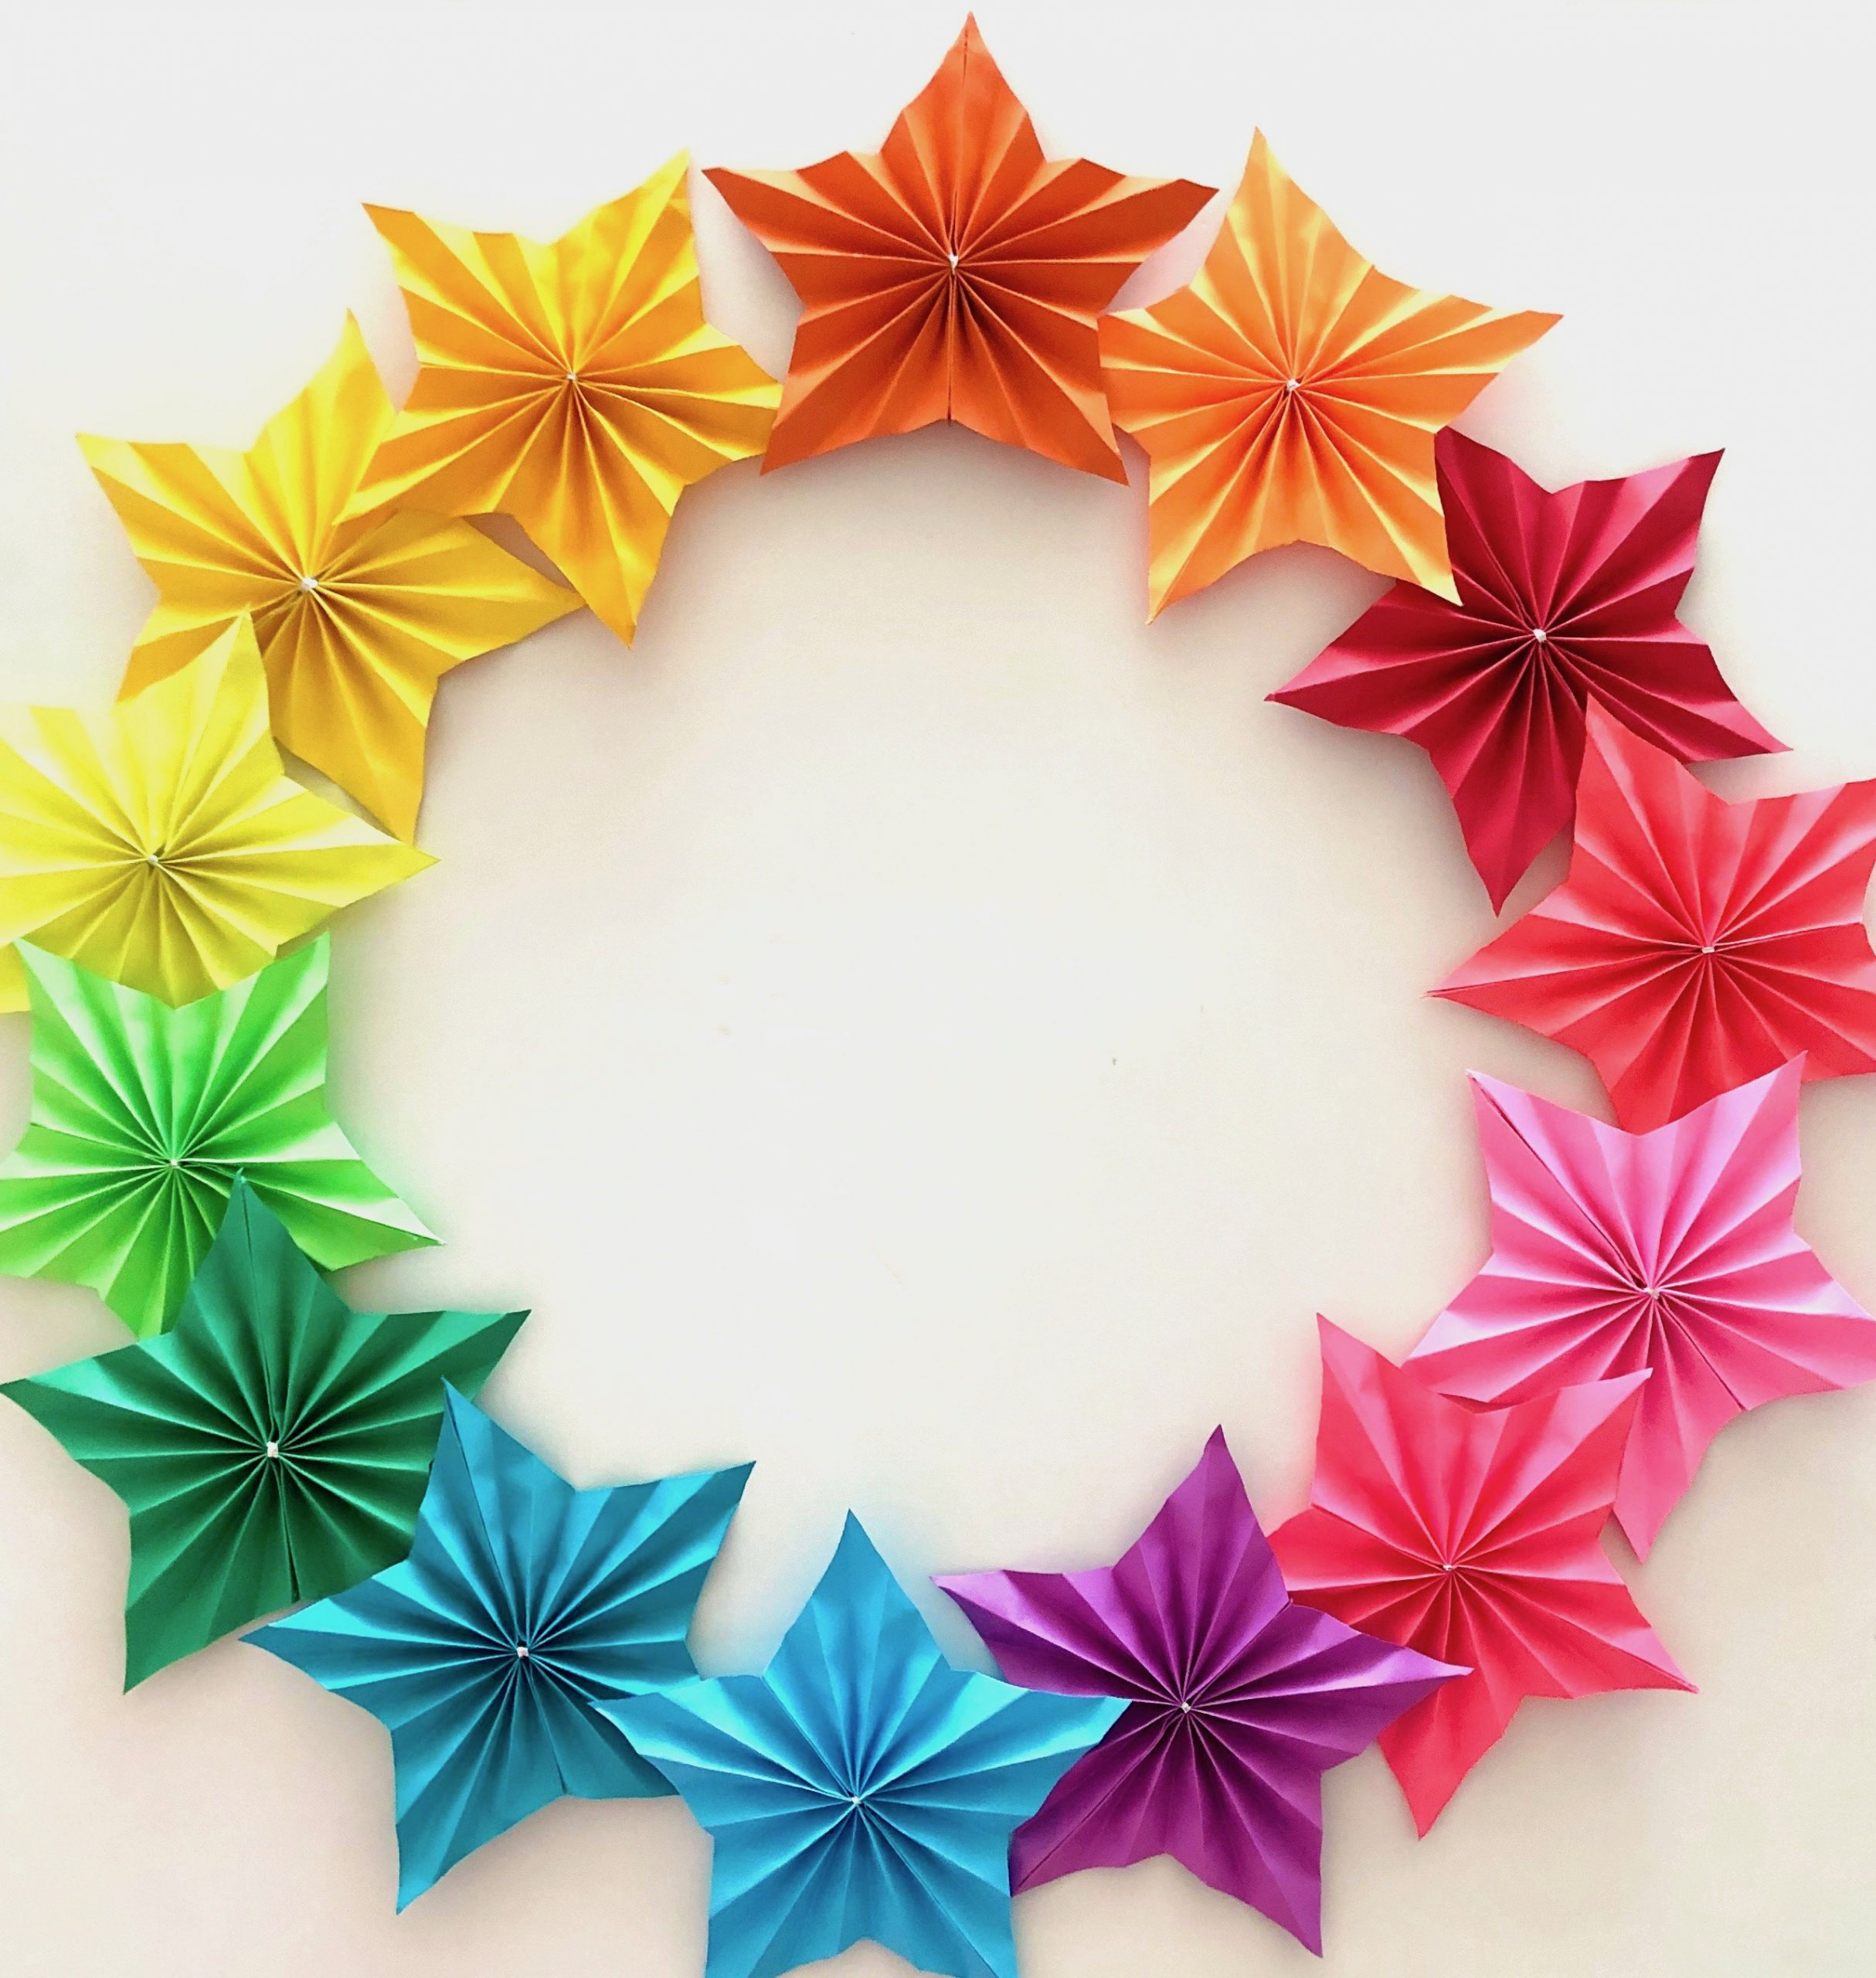 Rainbow Star paper fan